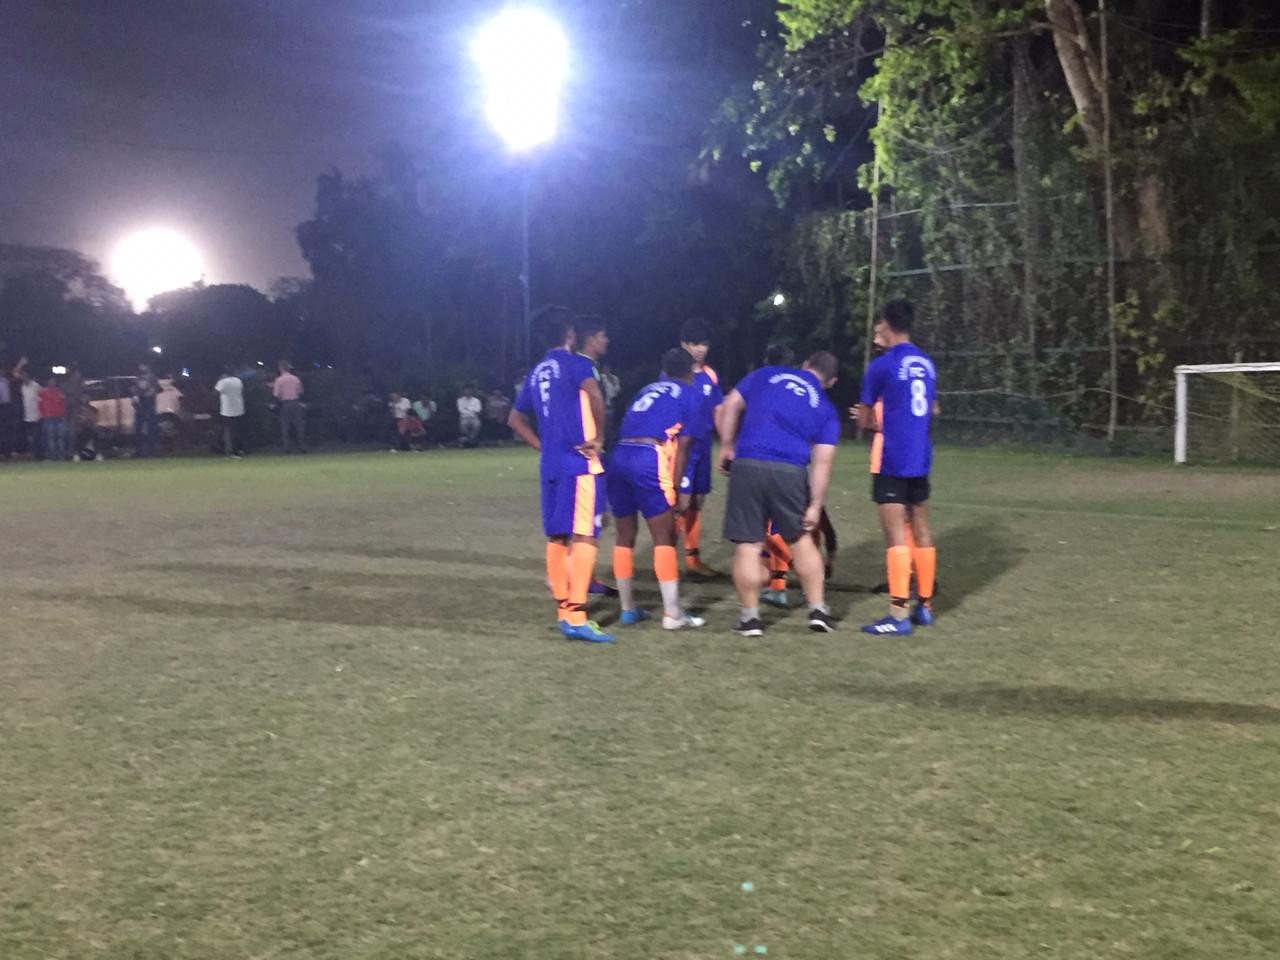 IAF FC in duscussion before the start of the game